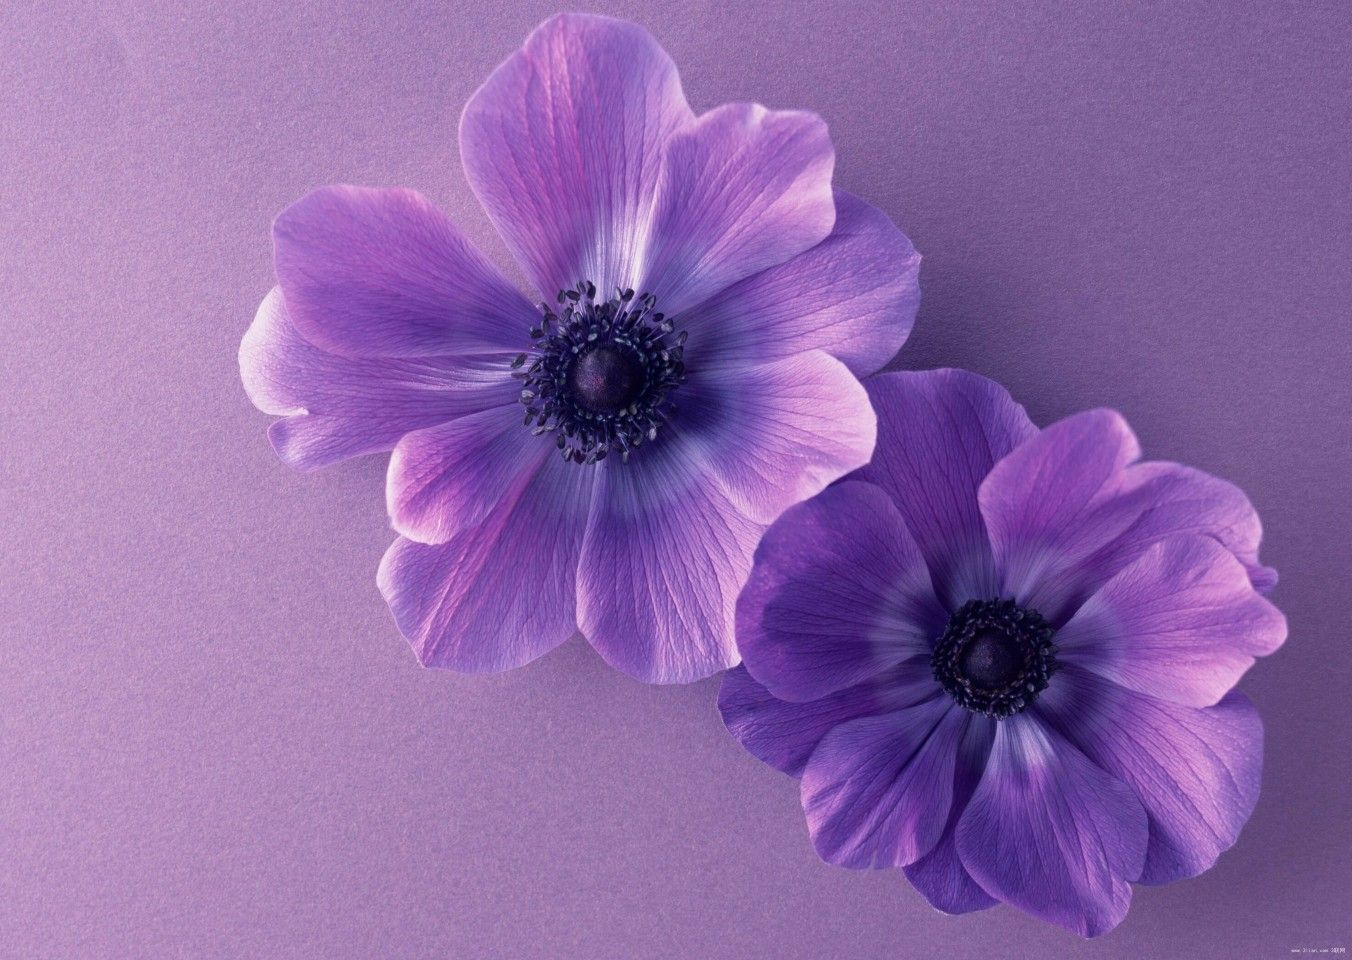 Pin by therese zabrinas on purple pinterest purple flowers and